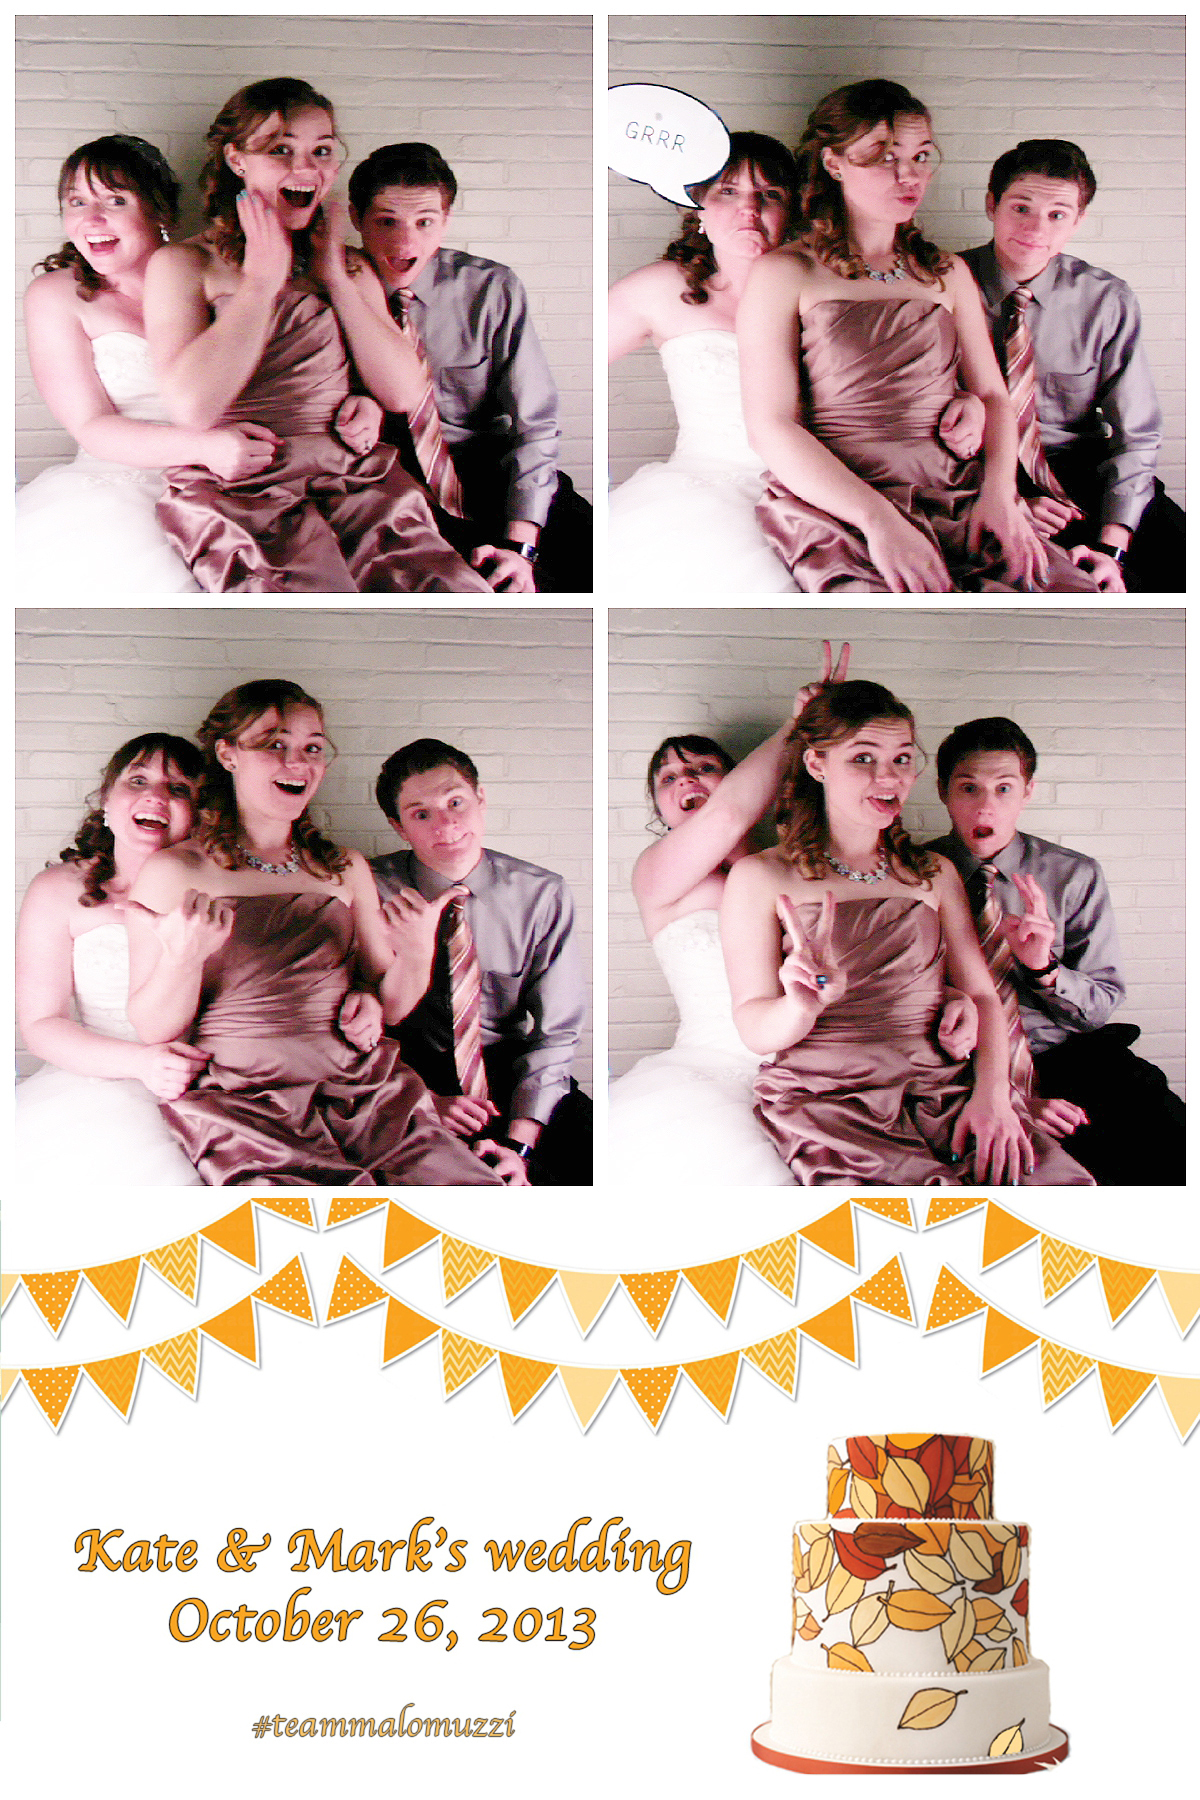 AshleyAlexKate@PhotoBooth